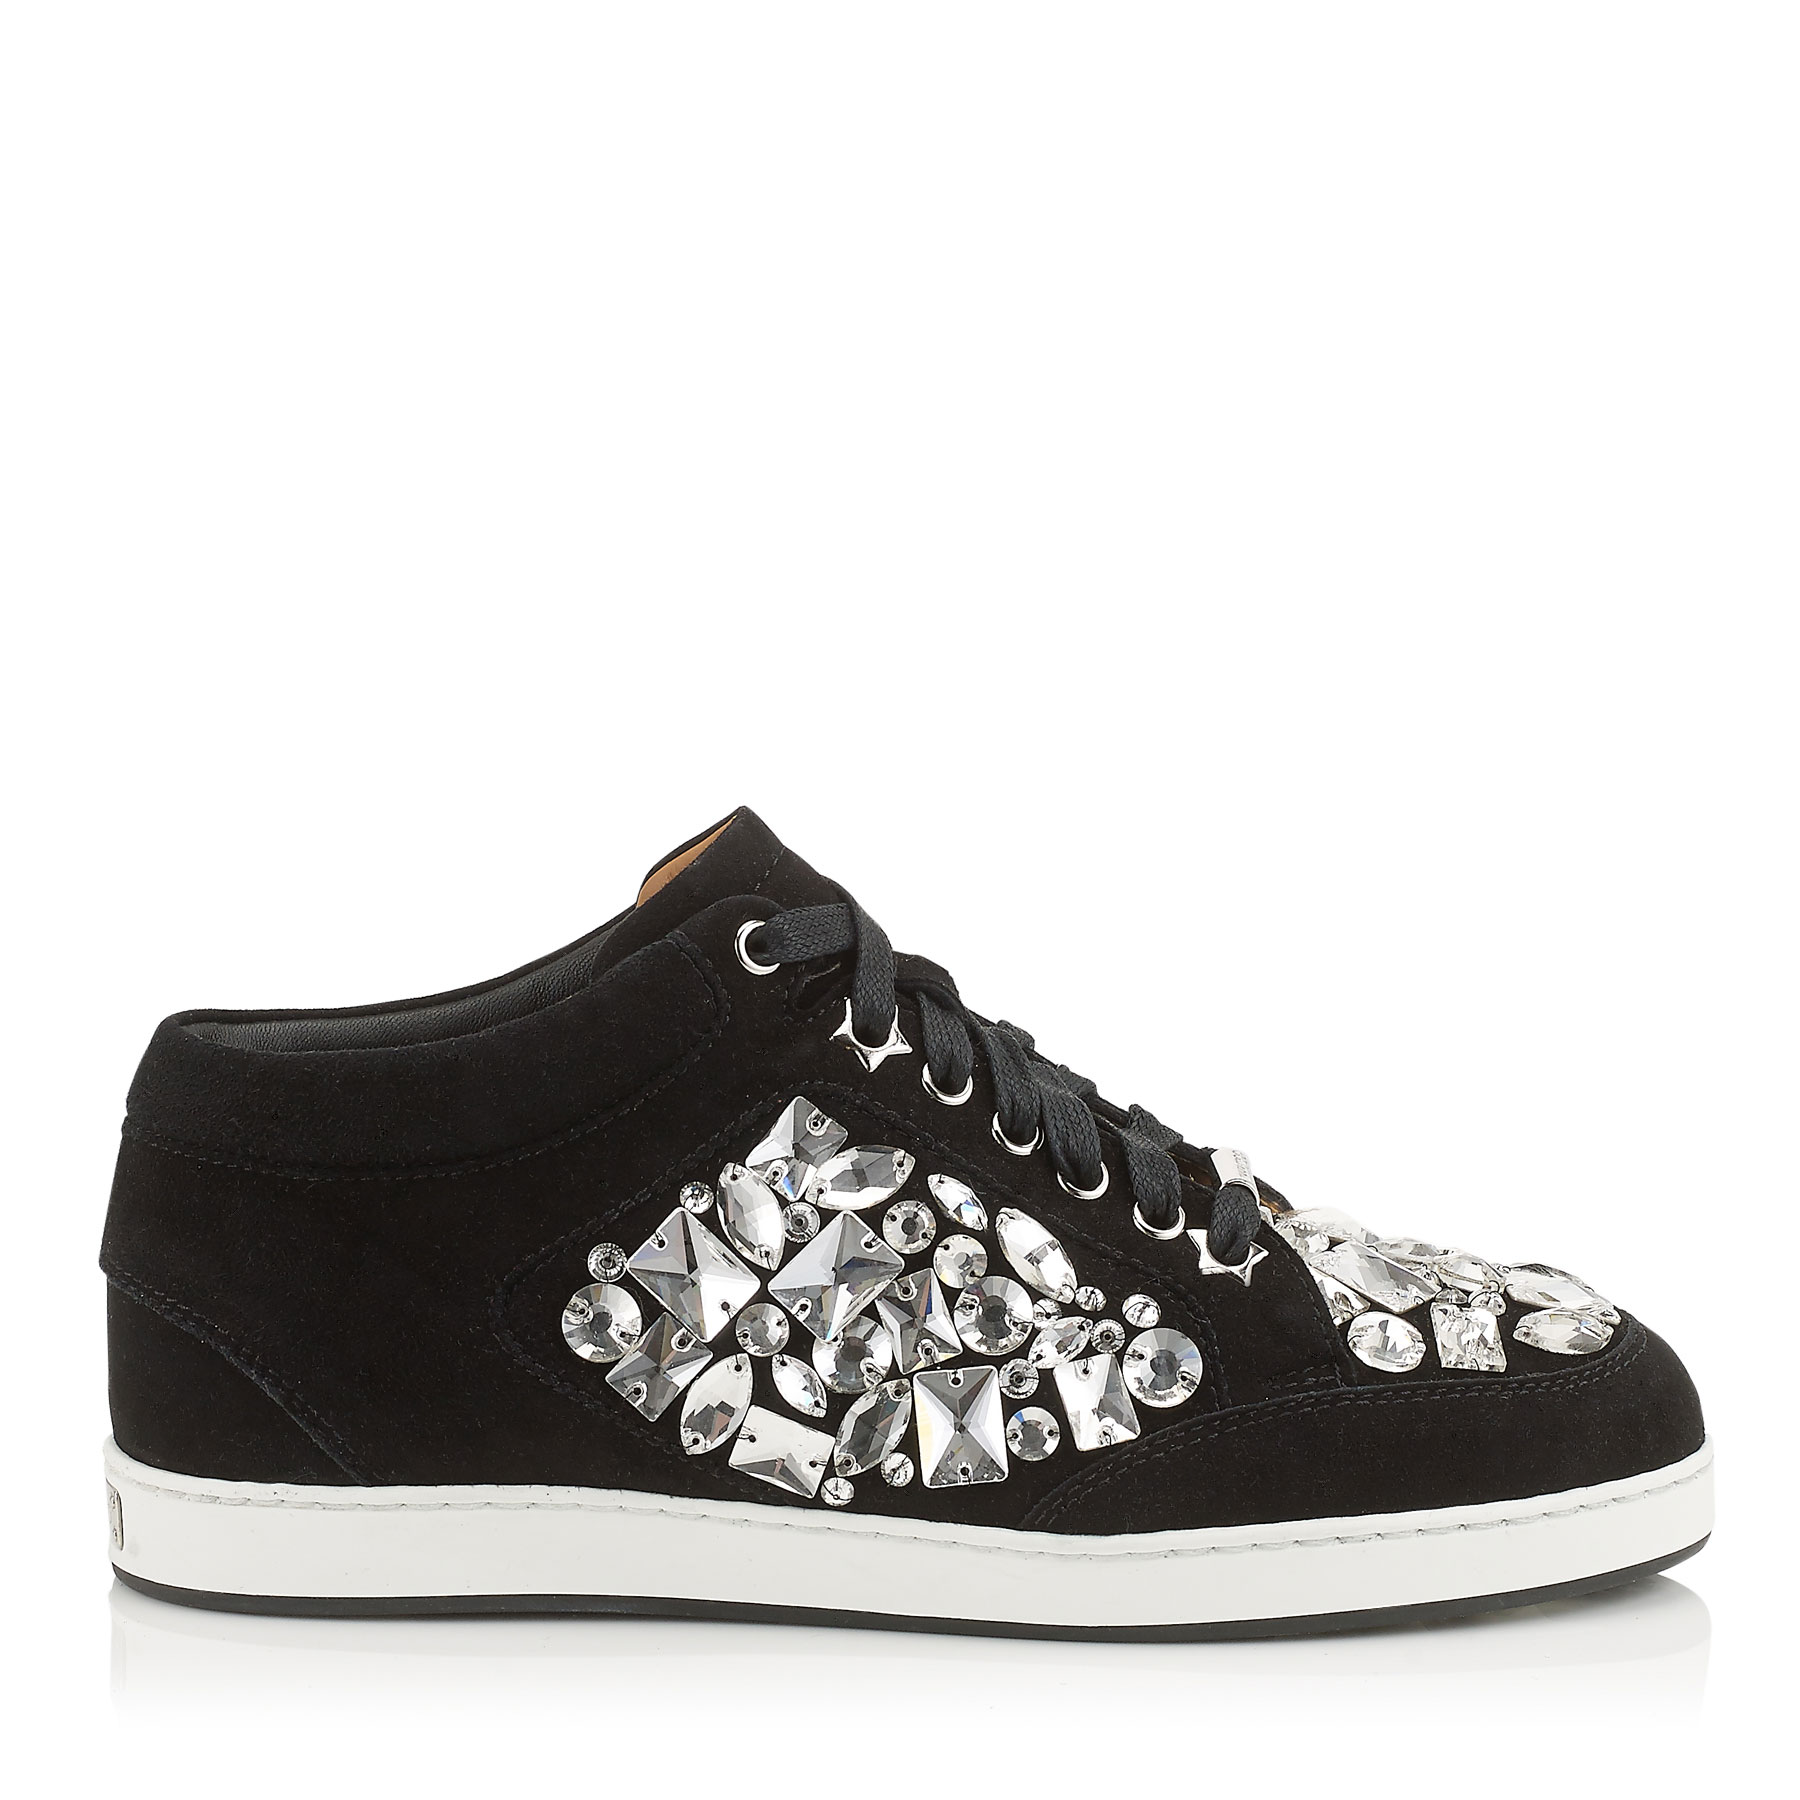 MIAMI Black Suede with Crystals Low Top Trainers